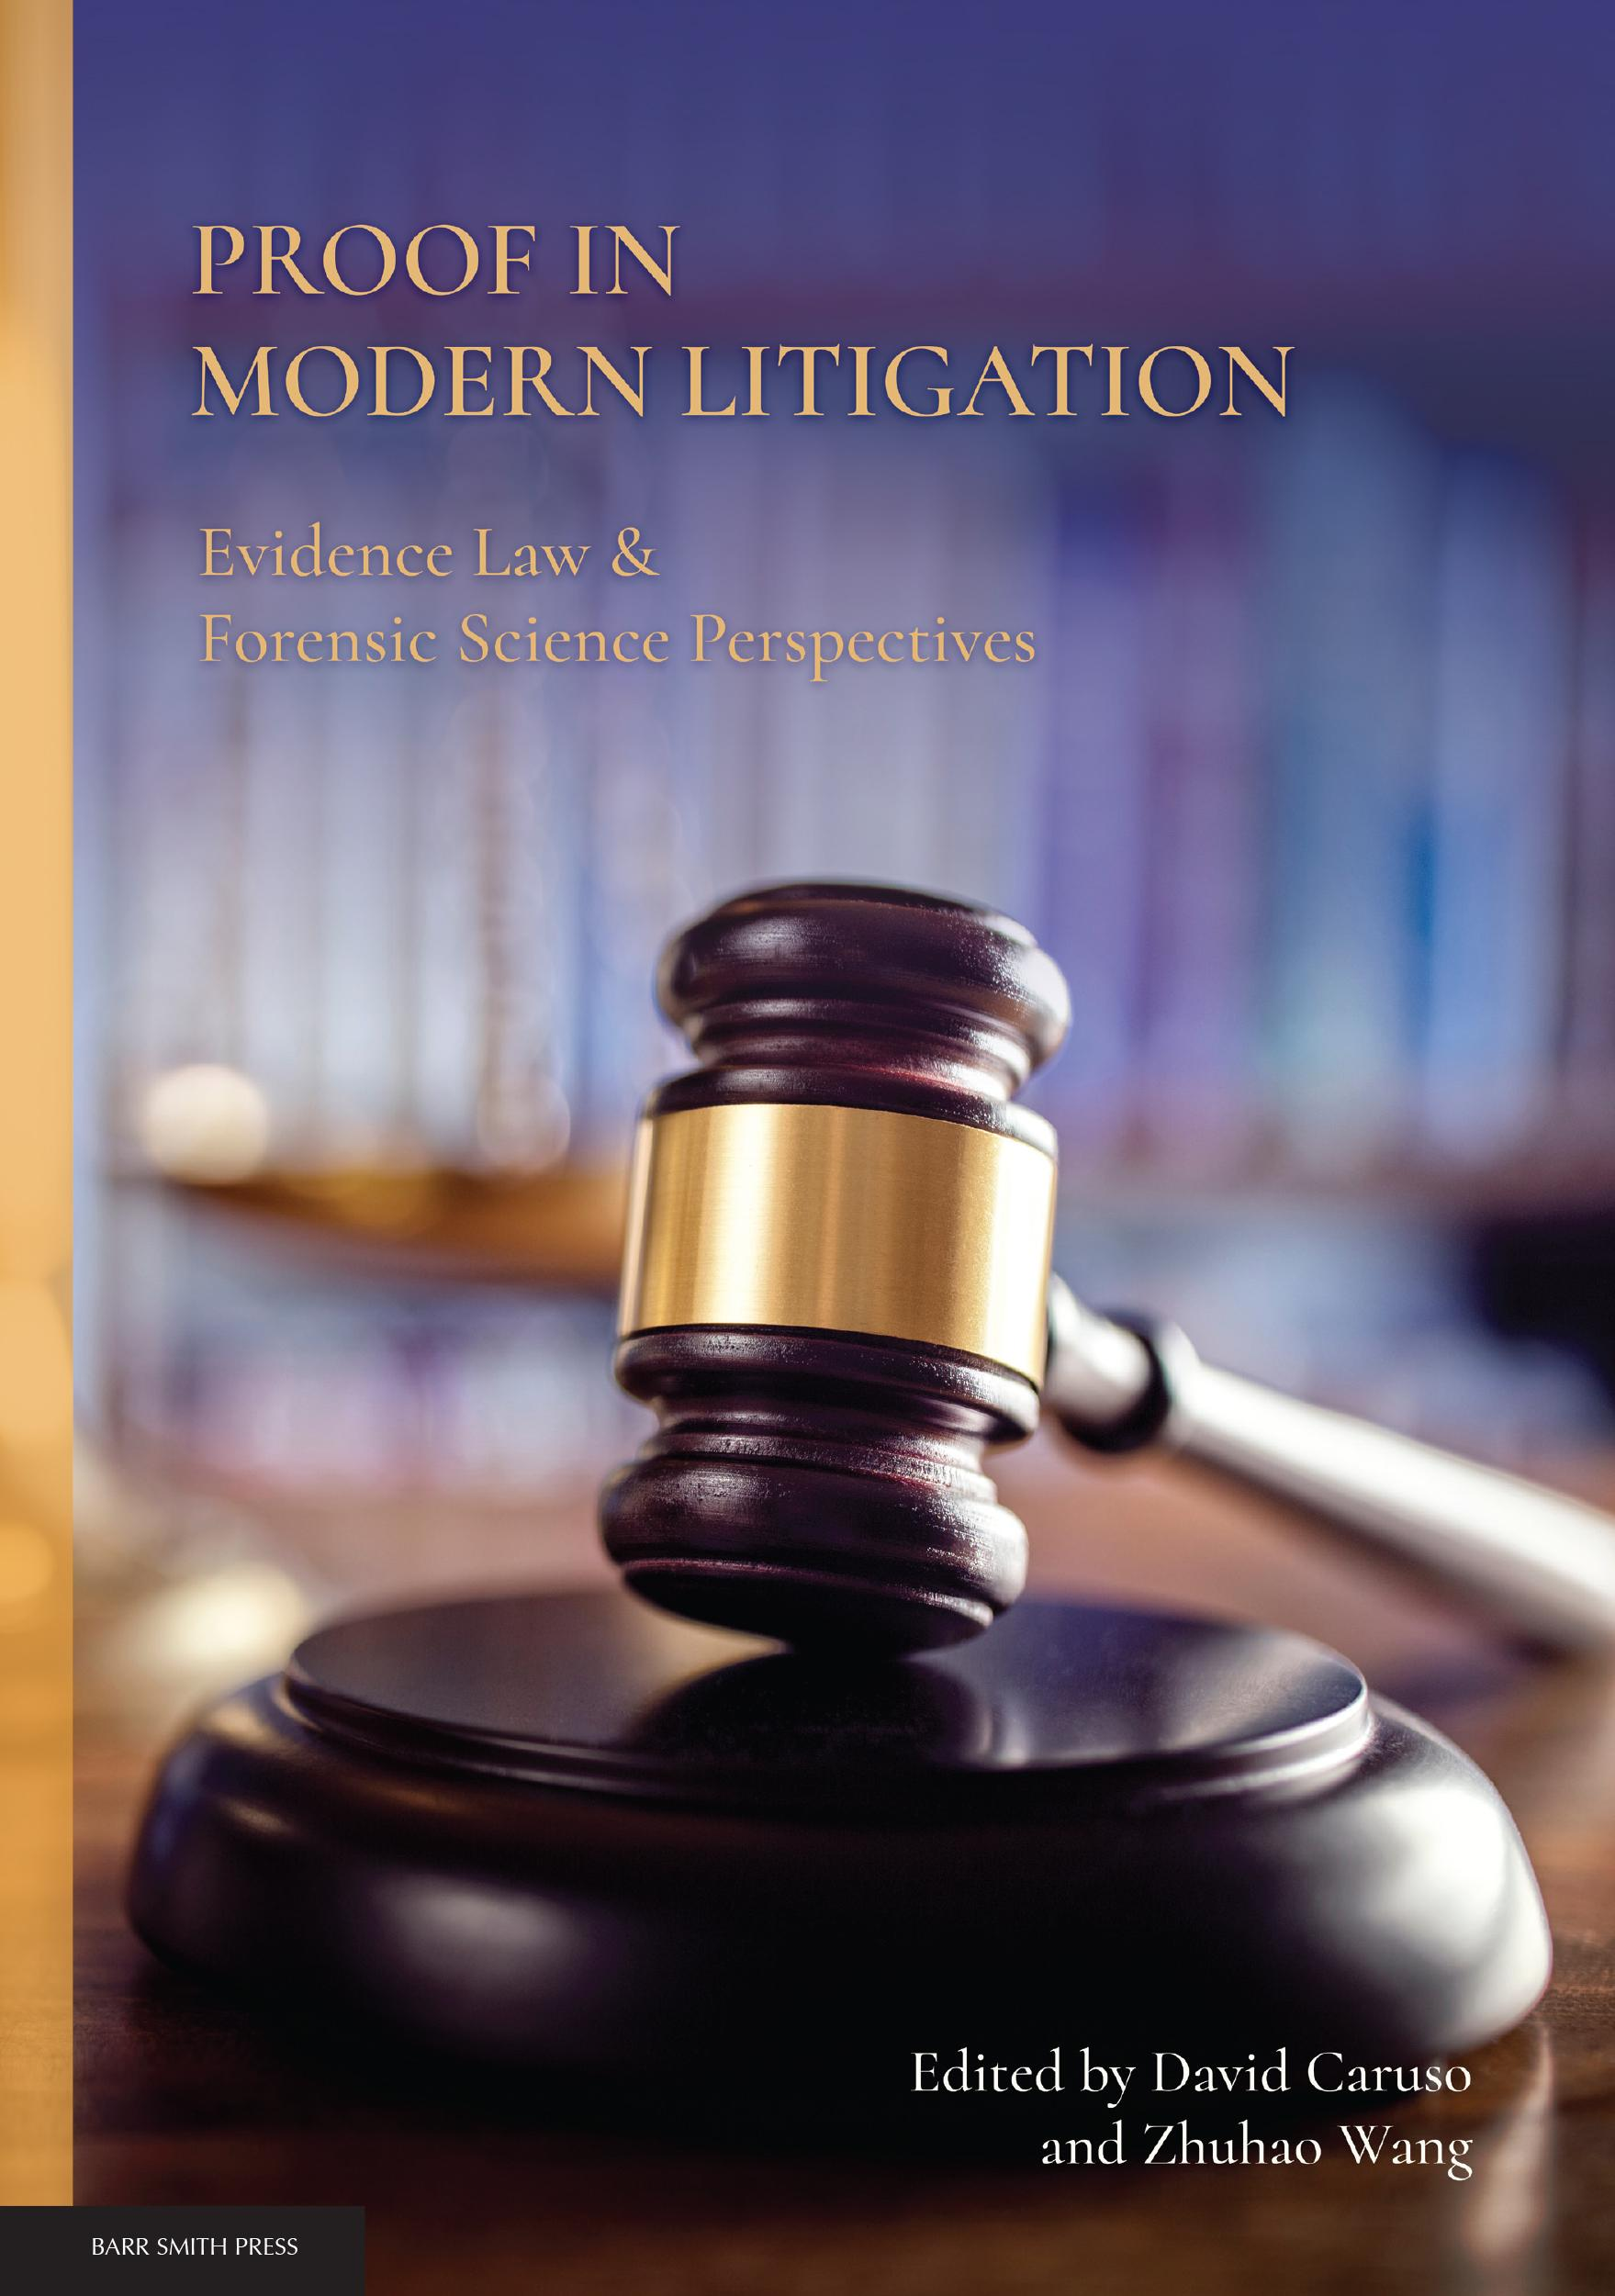 Proof in Modern Litigation cover